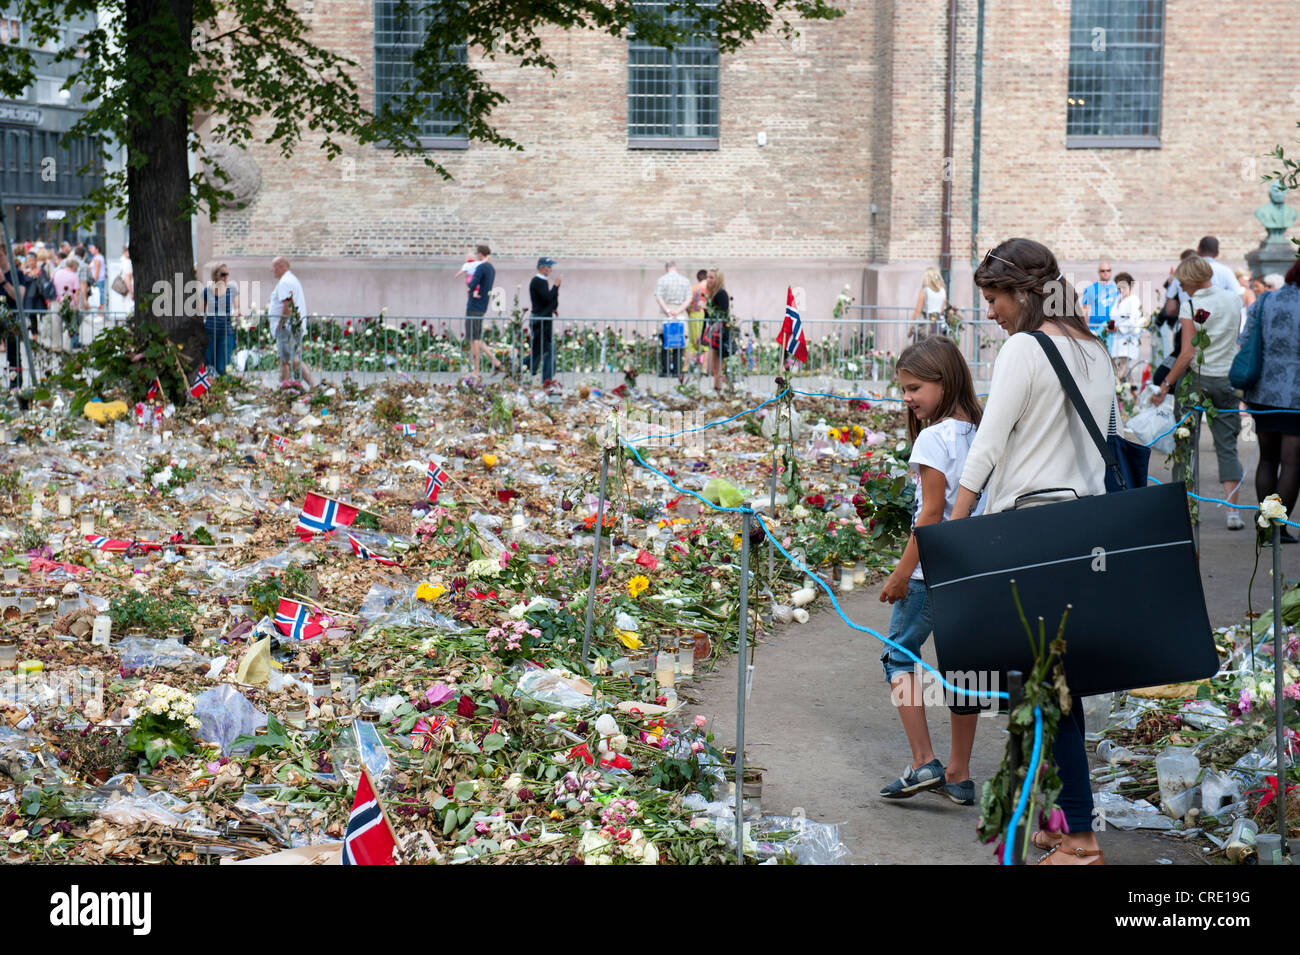 Flowers and flags to commemorate the victims of the attacks from 22 July 2011 at Oslo Cathedral, Oslo Domkirke, - Stock Image